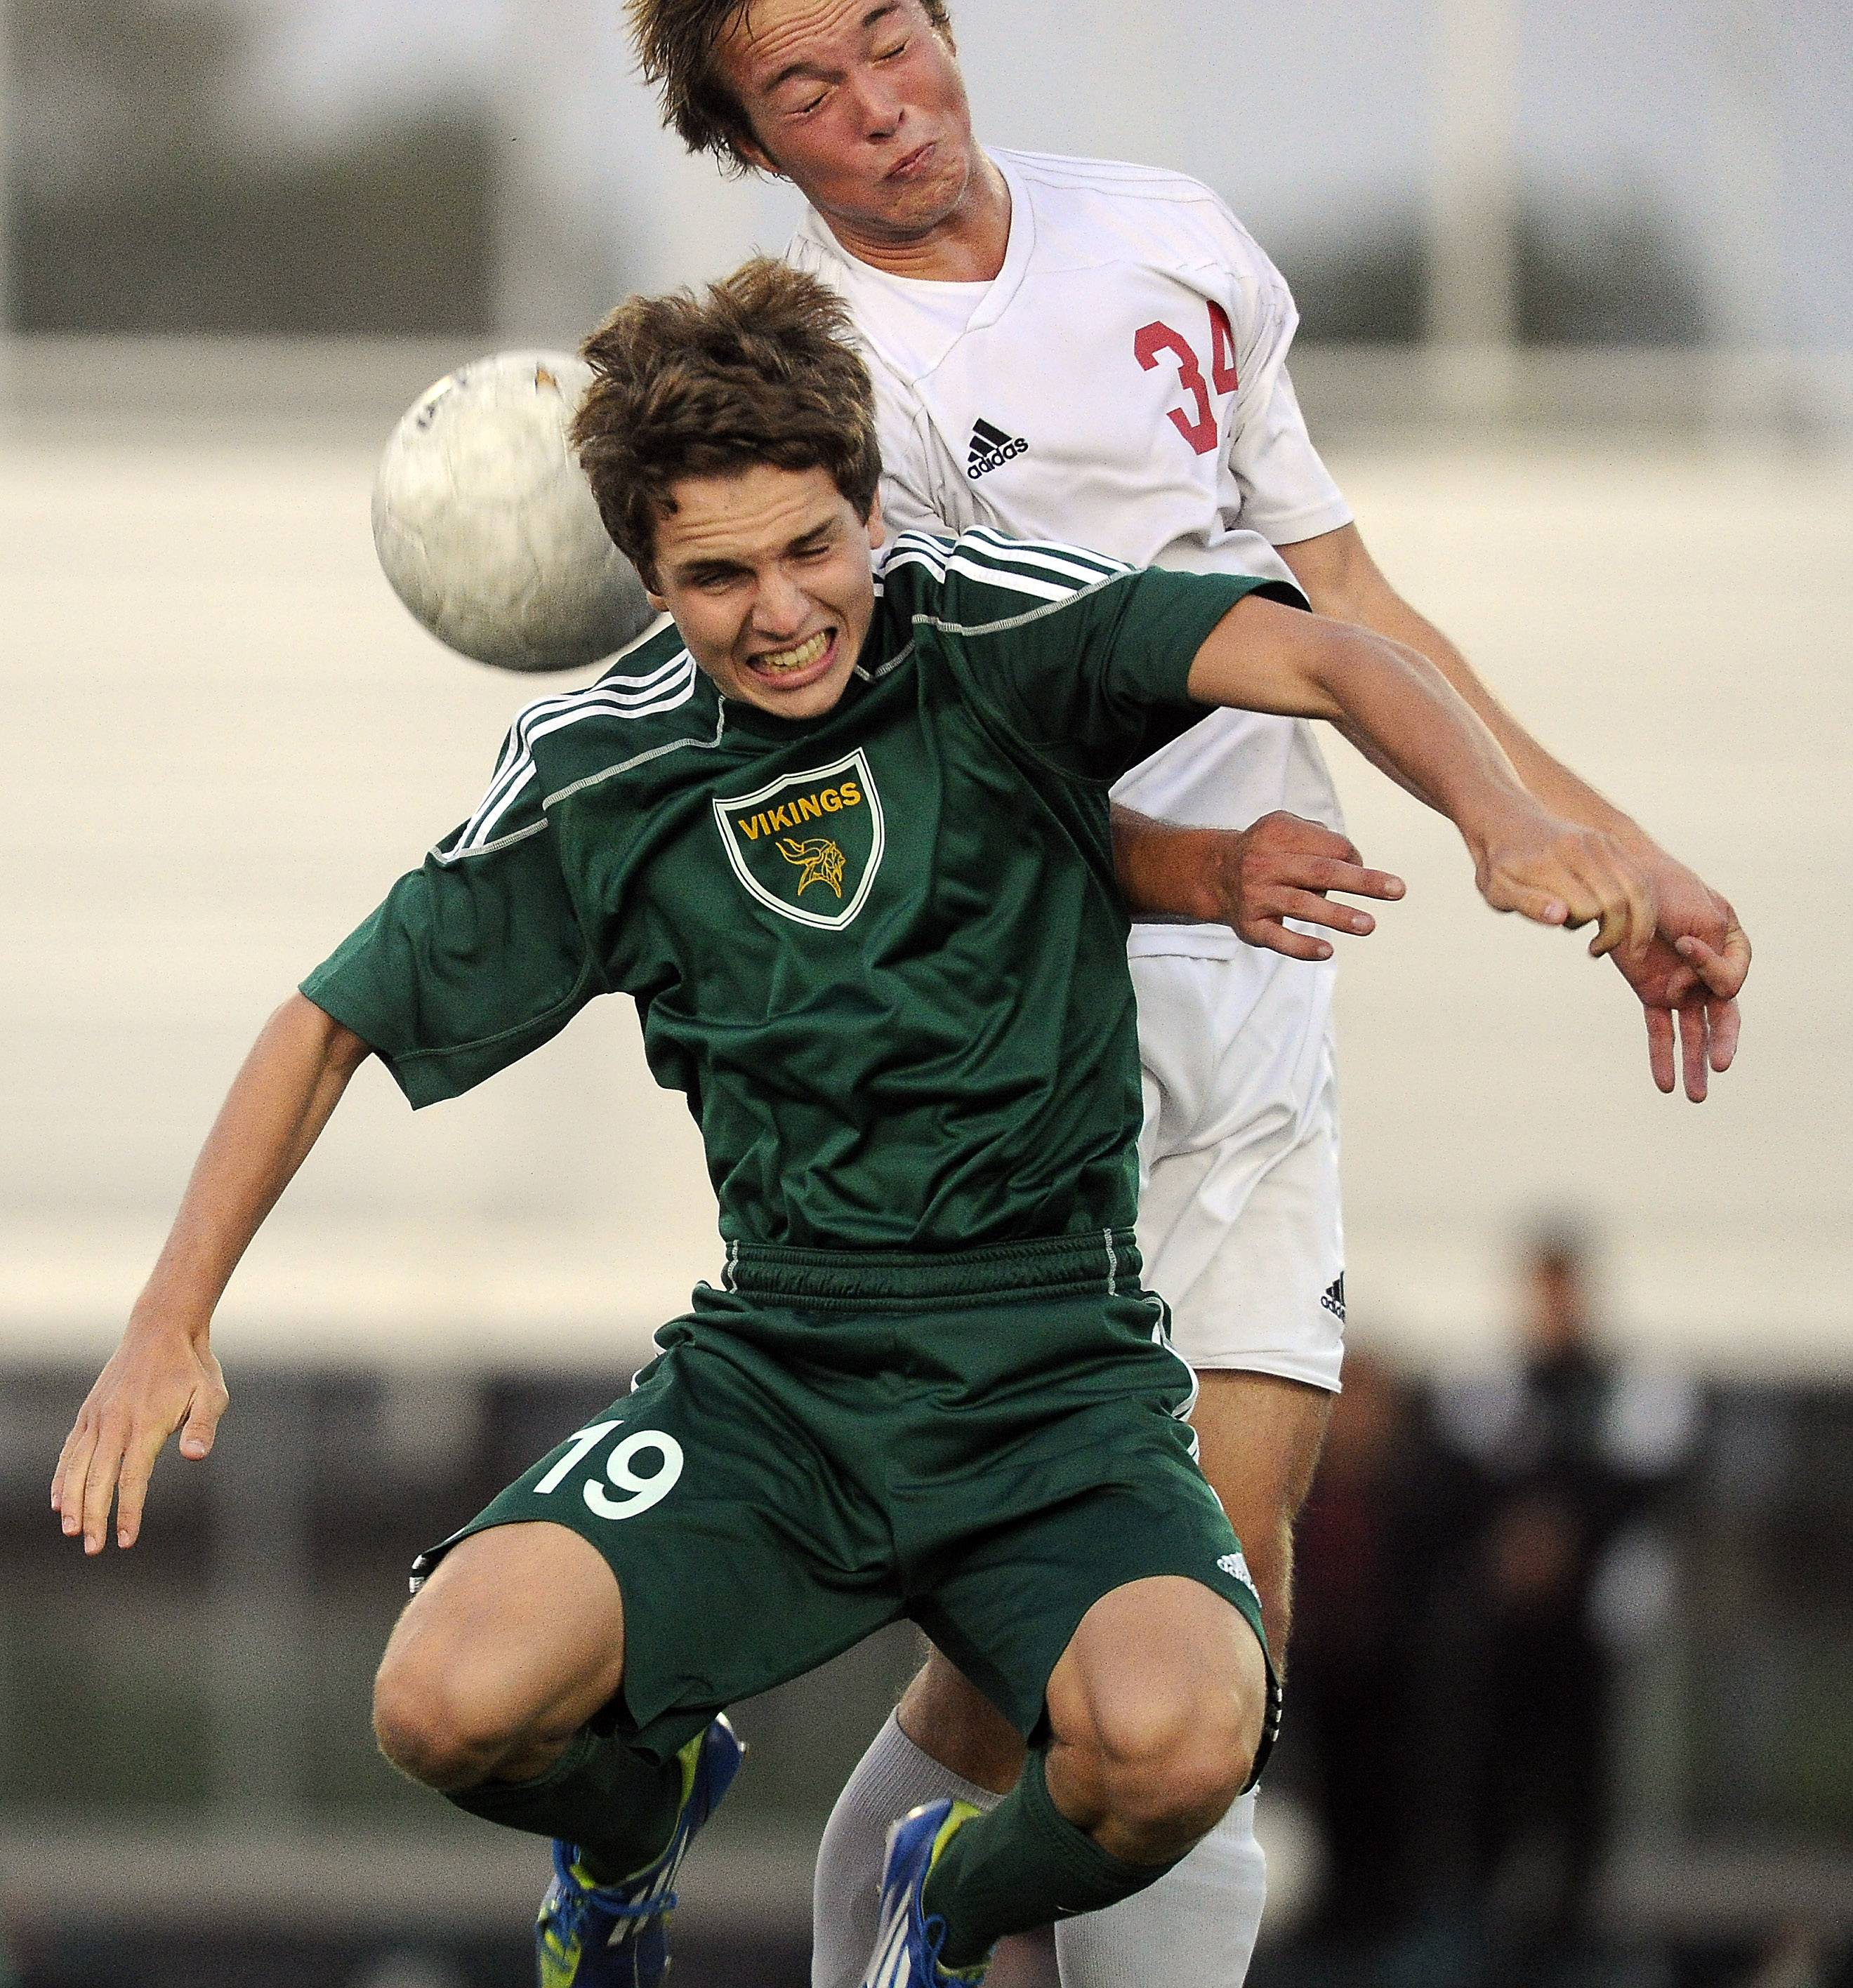 Palatine's Gavin Falotico and Fremd's Jake Arbour battle for the ball in the first half at Palatine on Thursday.